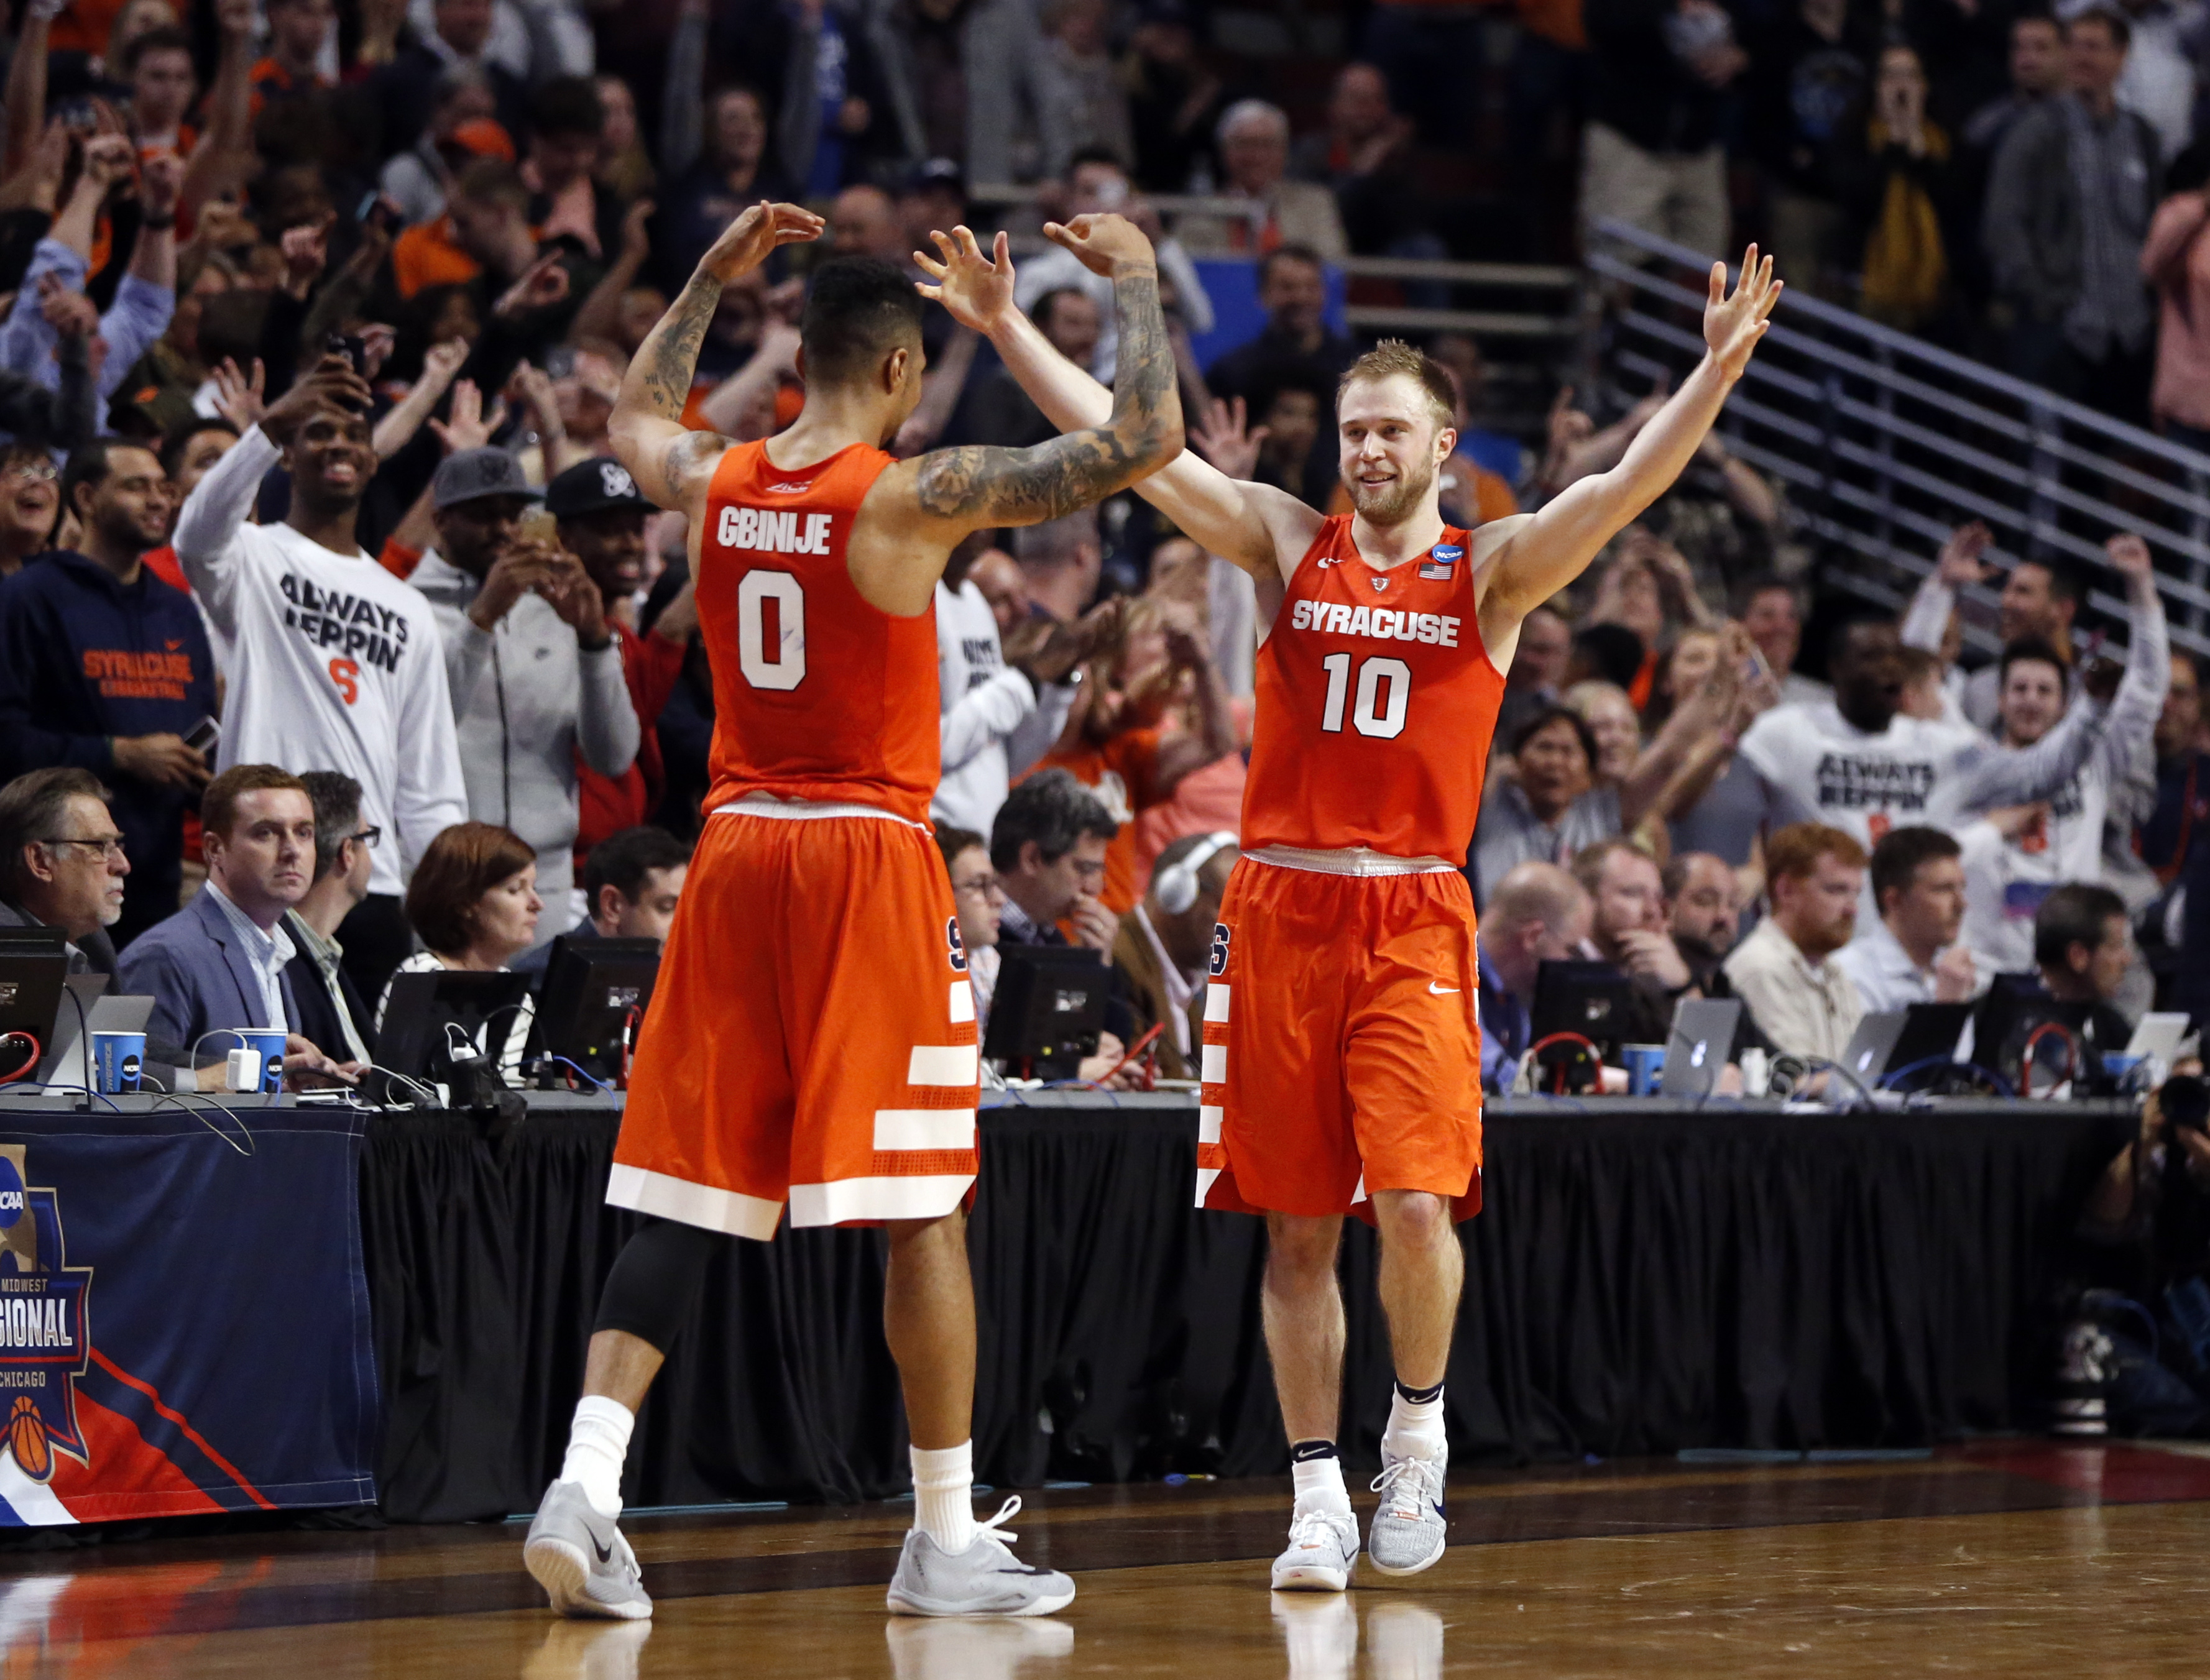 Syracuse's Michael Gbinije (0) and Trevor Cooney (10) celebrate after a college basketball game against Virginia in the regional finals of the NCAA Tournament, Sunday, March 27, 2016, in Chicago. Syracuse won 68-62. (AP Photo/Charles Rex Arbogast)